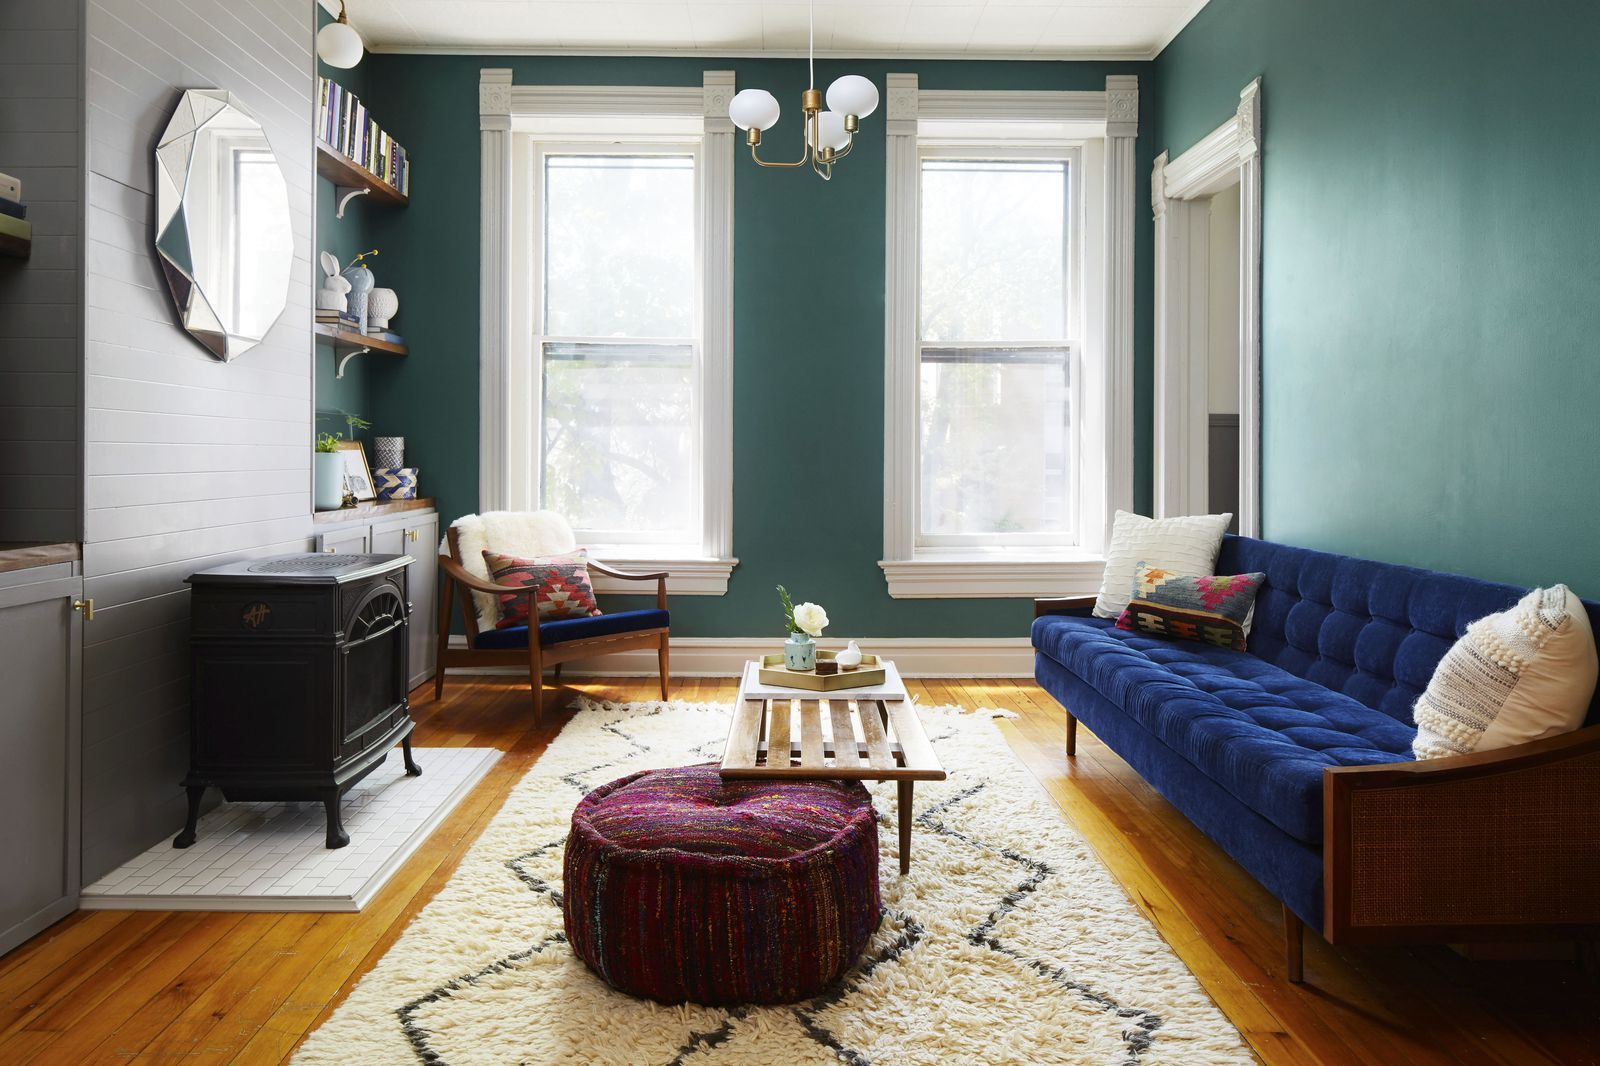 13 Interior Design Ideas That Make Your Home Feel Huge